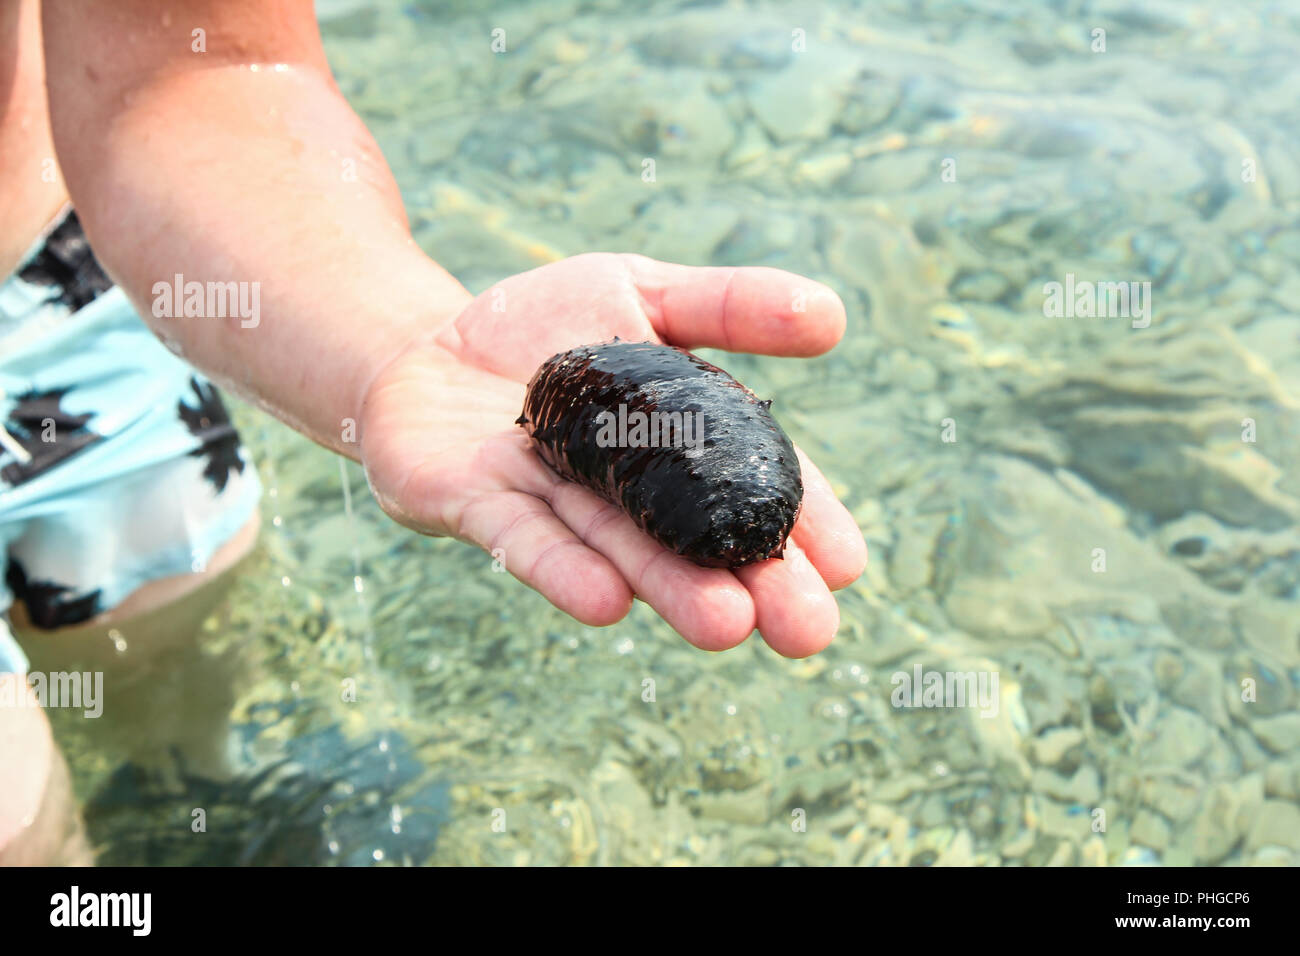 Man holding a Sea cucumber above the water. - Stock Image